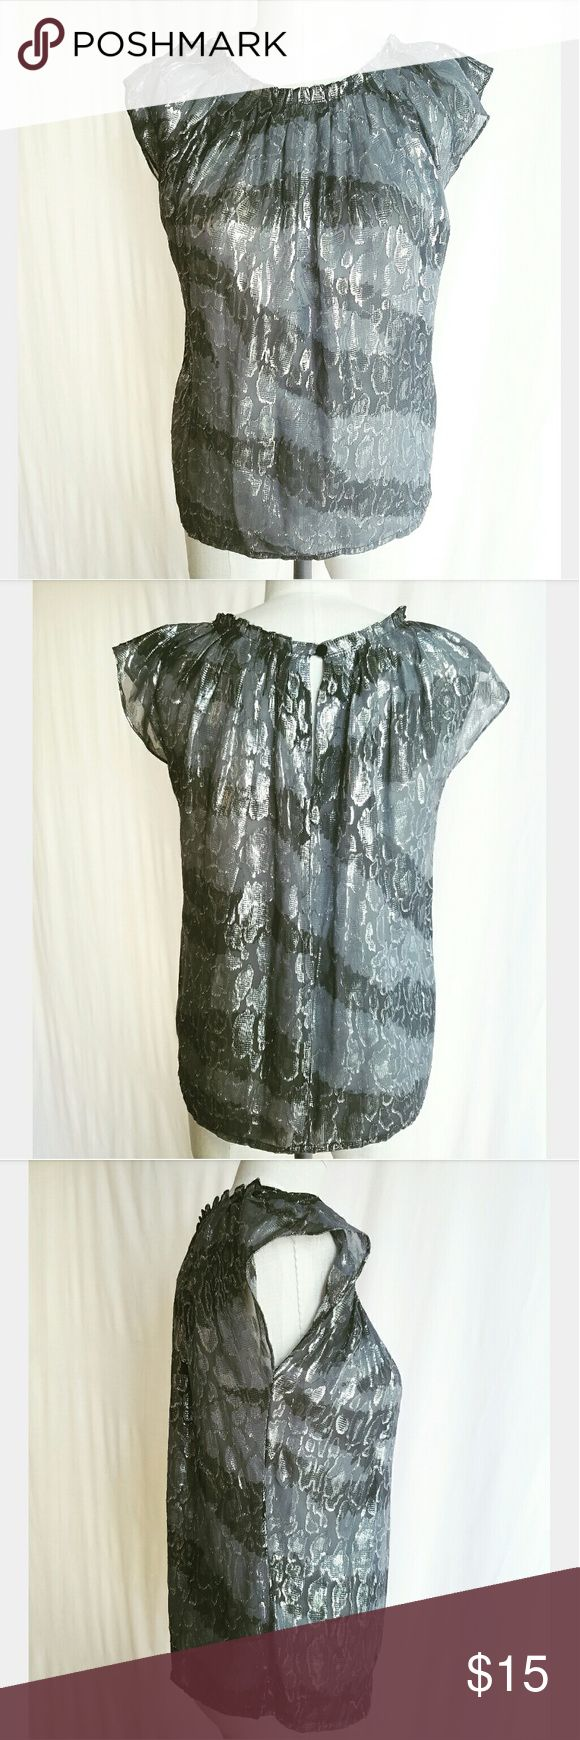 Michael Korea Silver Metallic Blouse Such a cutie! Flutter sleeves Excellent condition Michael Kors Tops Blouses